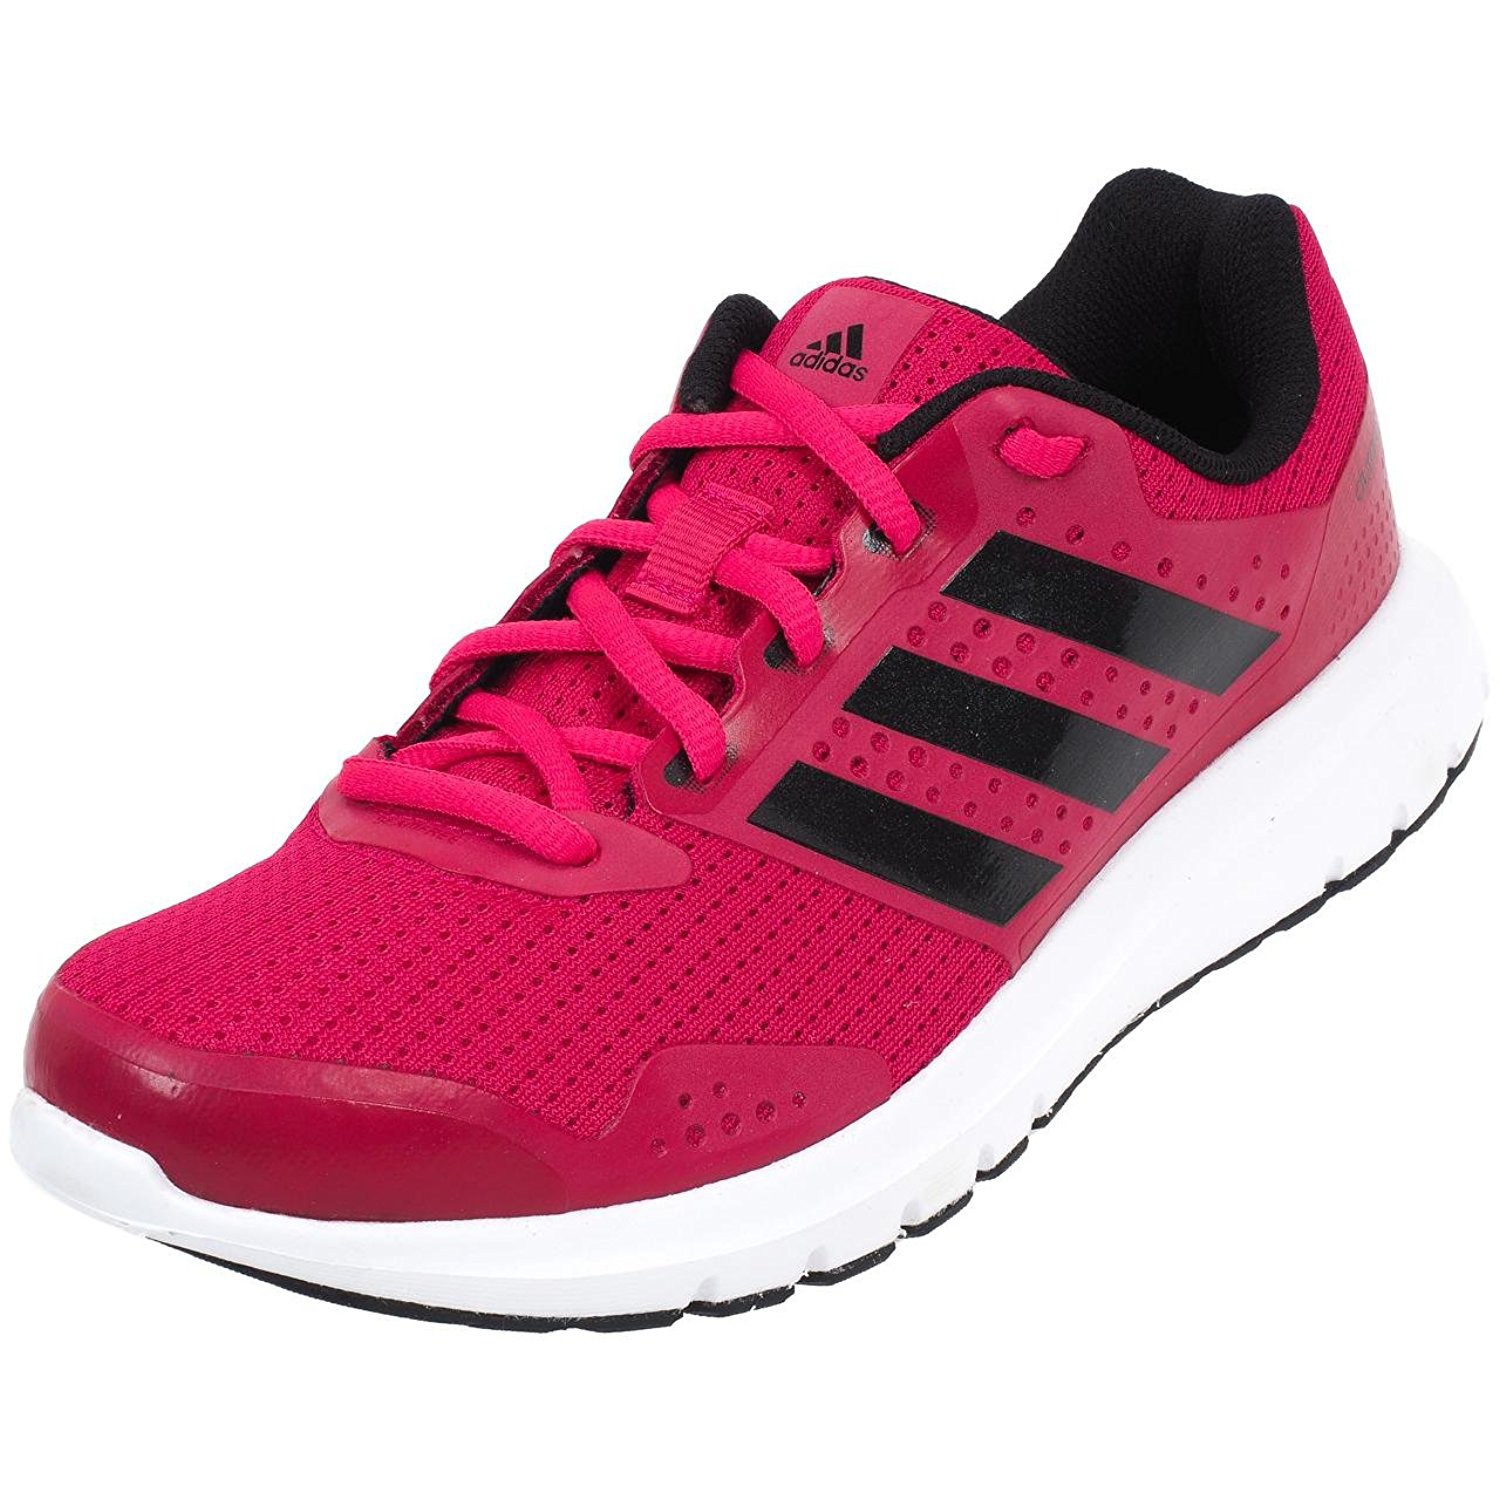 Duramo 77 Chaussure Femme ADIDAS ROSE pas cher Chaussures